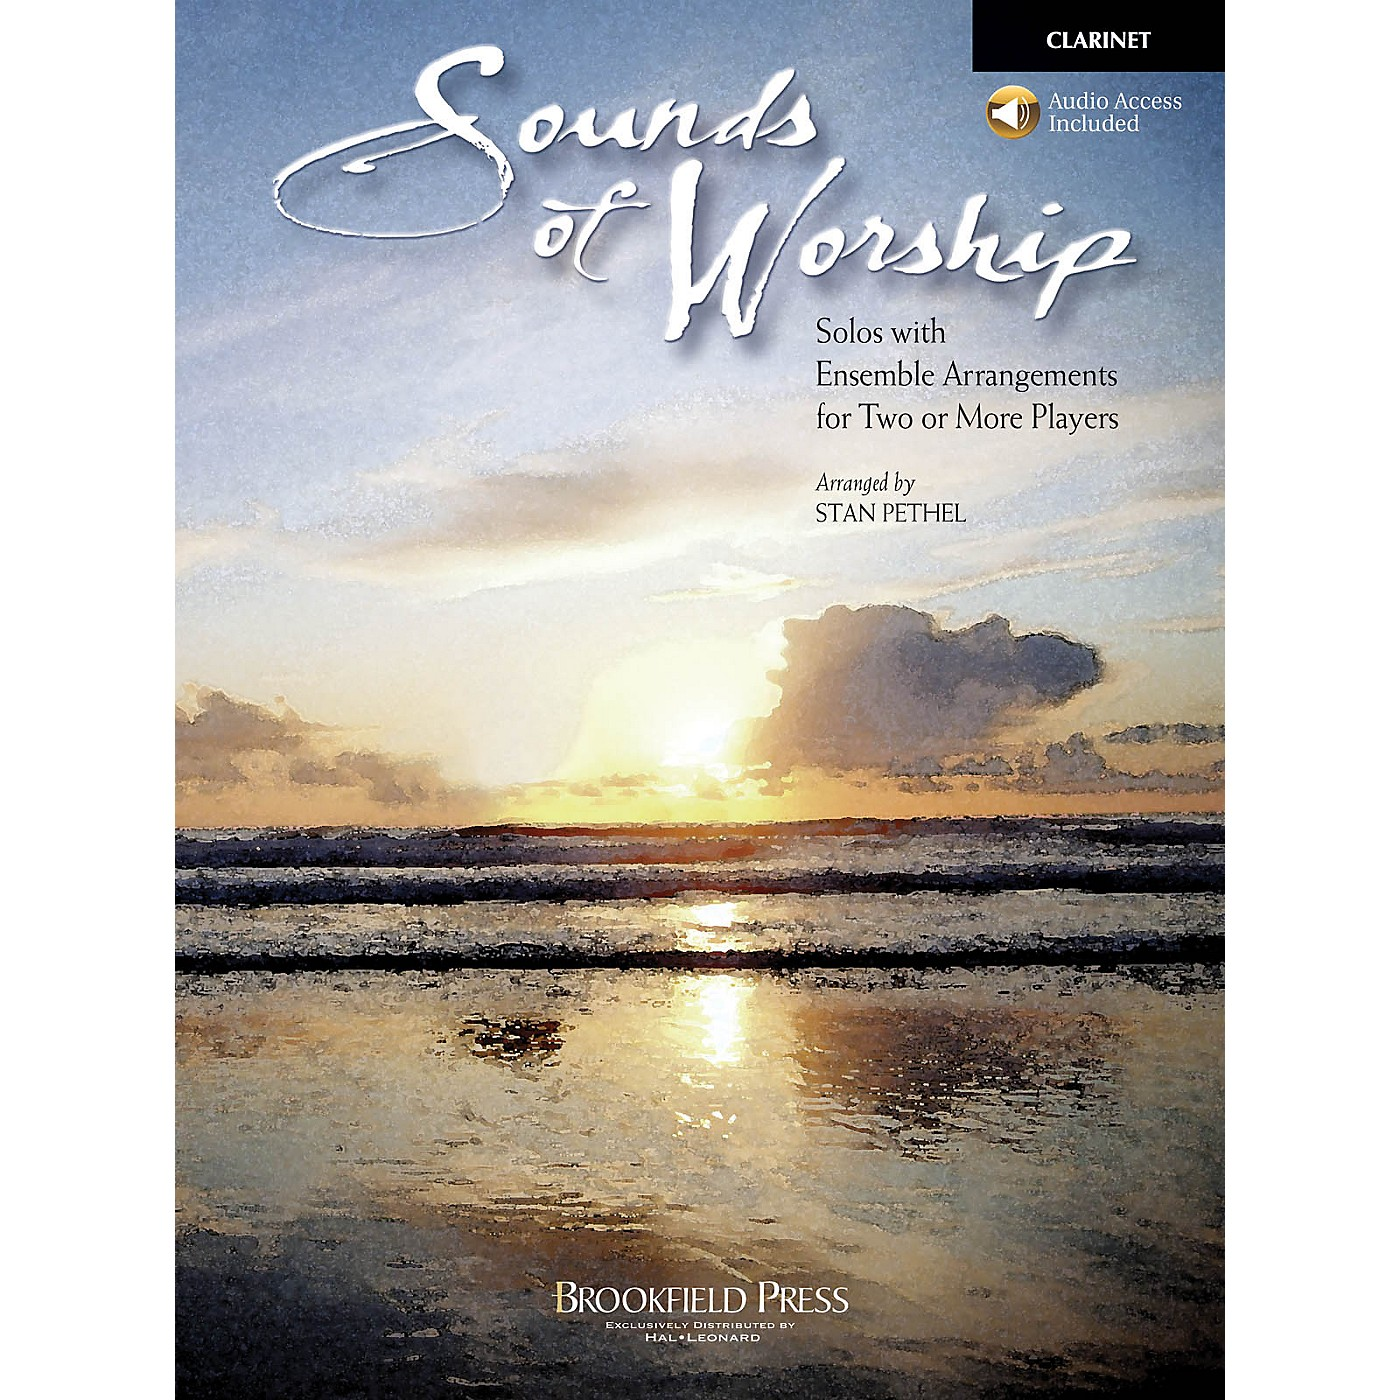 Brookfield Sounds of Worship Clarinet arranged by Stan Pethel thumbnail